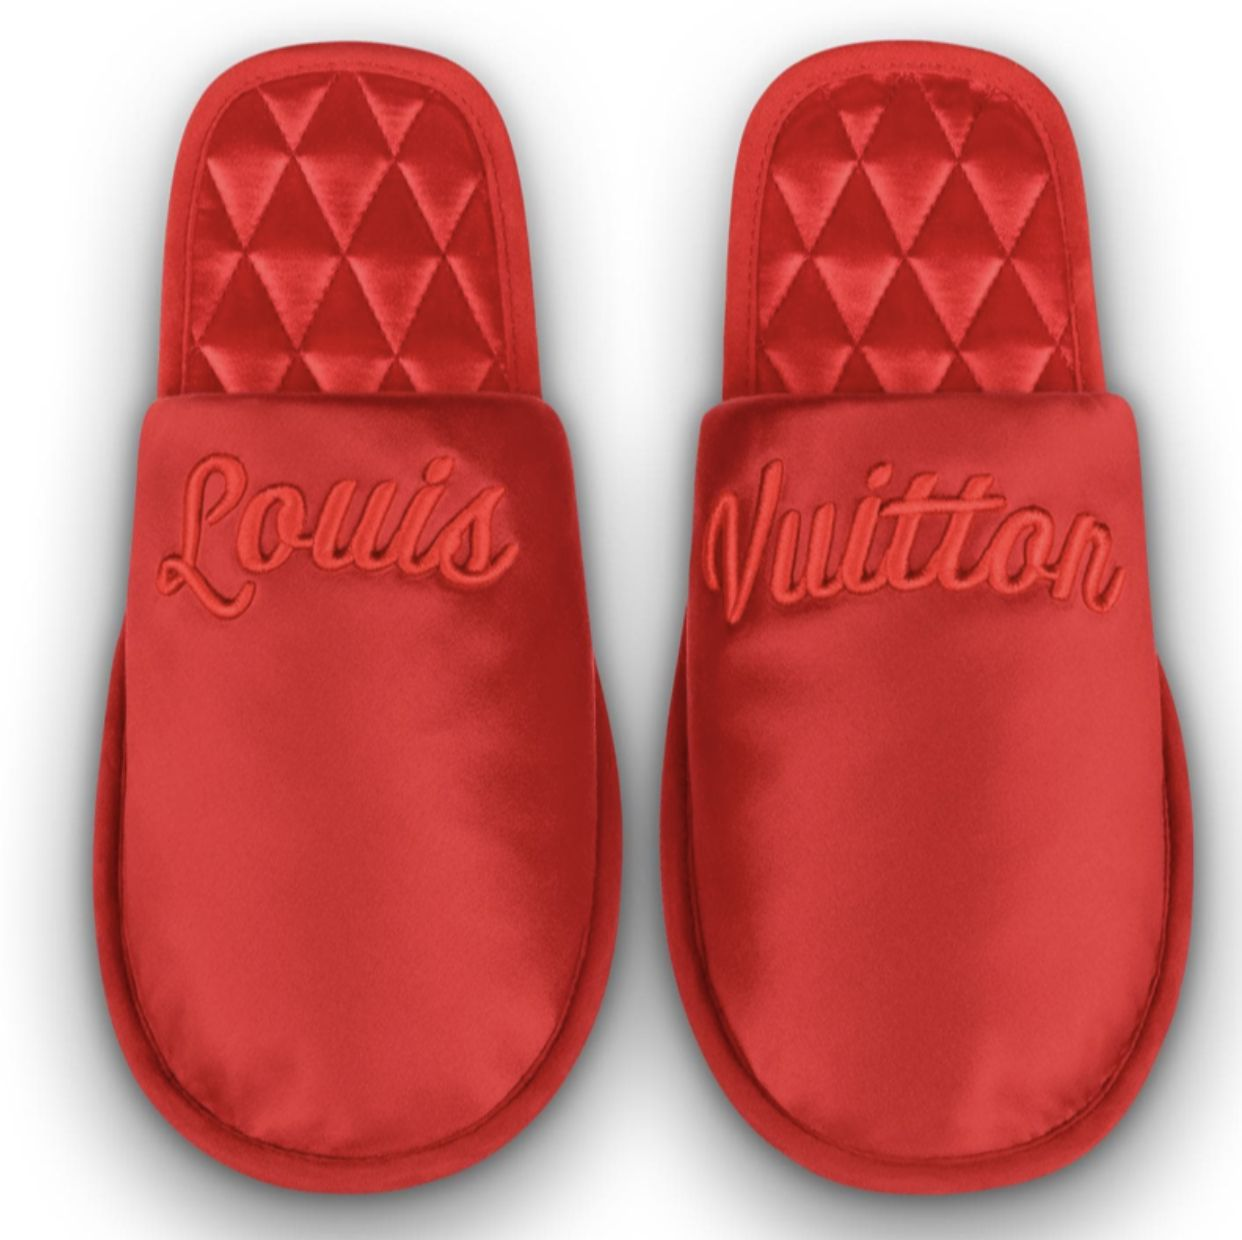 slippers | Slippers, Louis vuitton